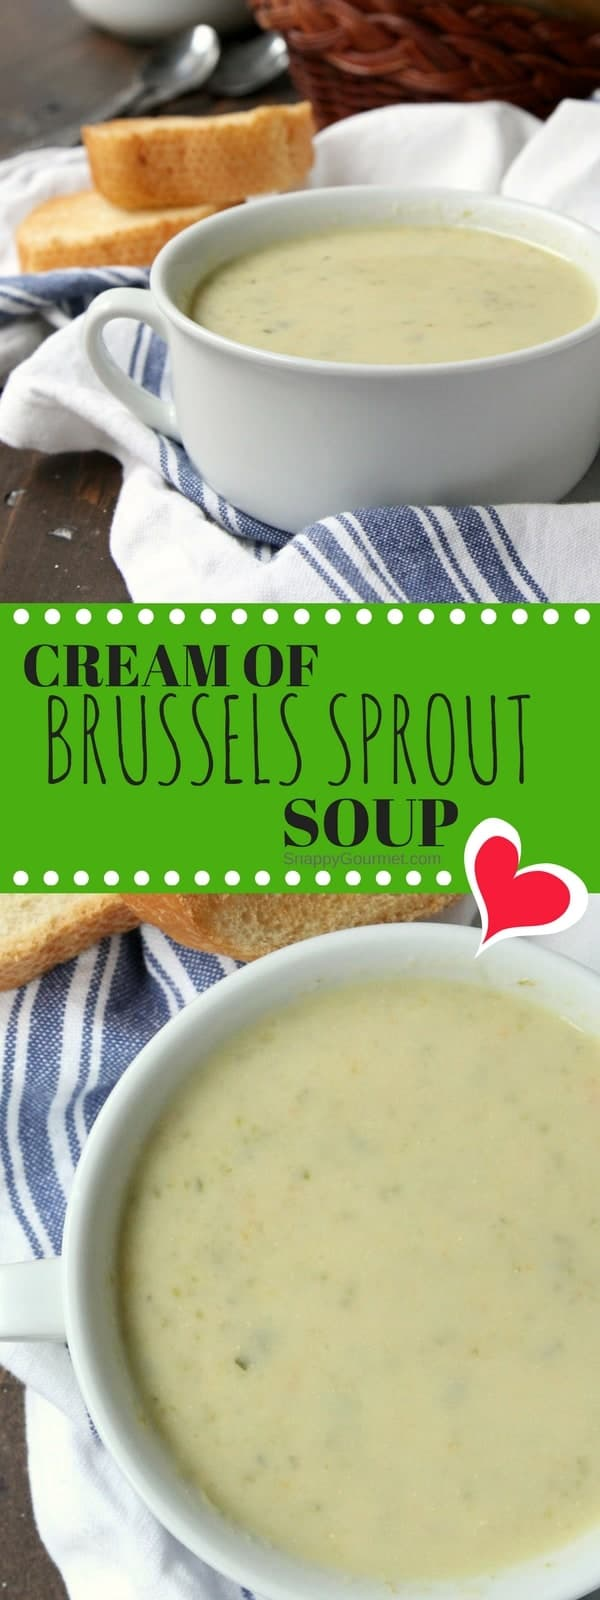 Cream of Brussels Sprout Soup Recipe - easy homemade vegetable soup recipe. SnappyGourmet.com